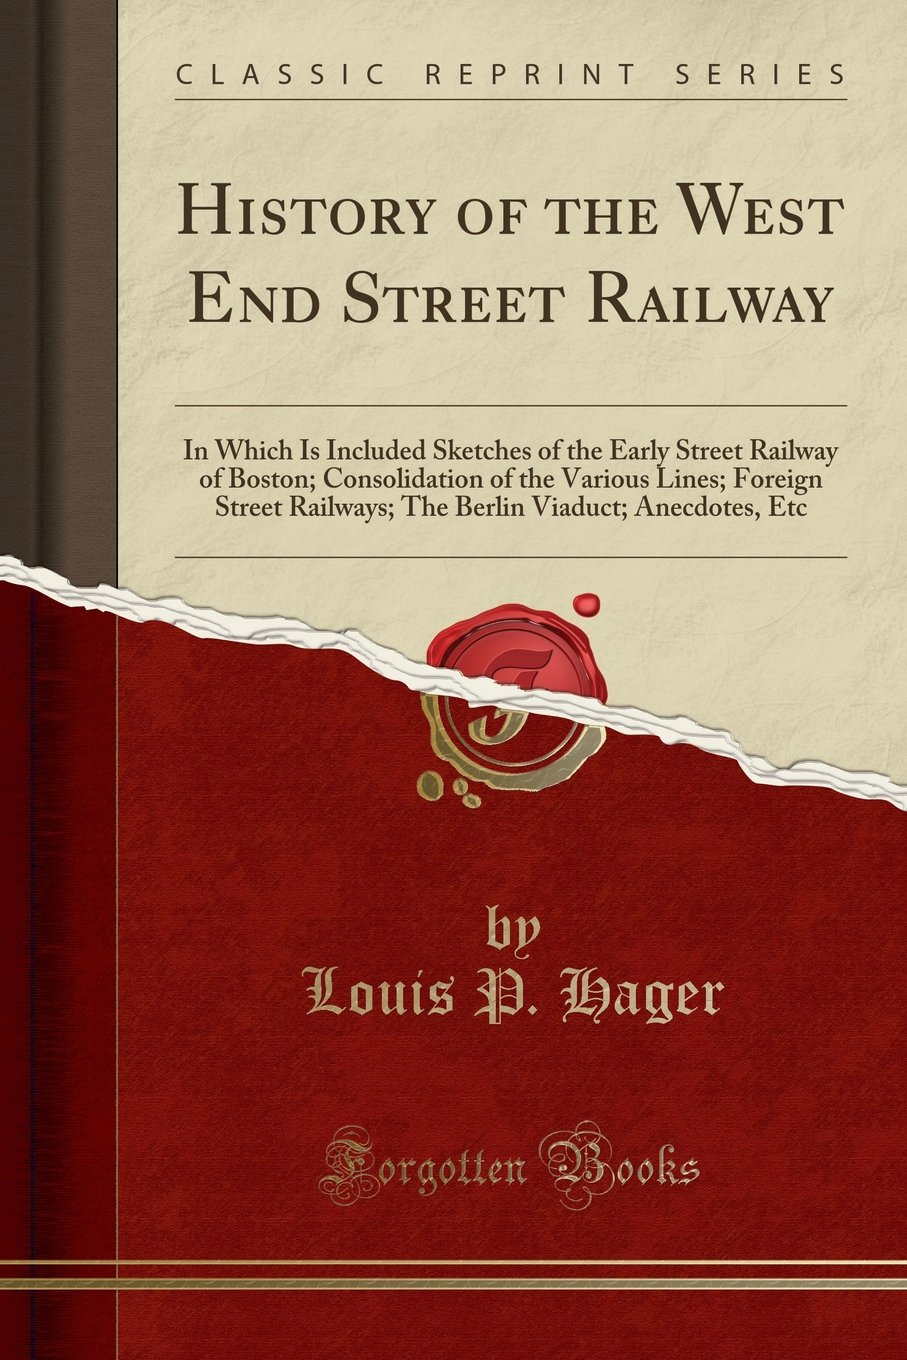 History of the West End Street Railway: In Which Is Included Sketches of the Early Street Railway of Boston; Consolidation of the Various Lines; ... Viaduct; Anecdotes, Etc (Classic Reprint) PDF